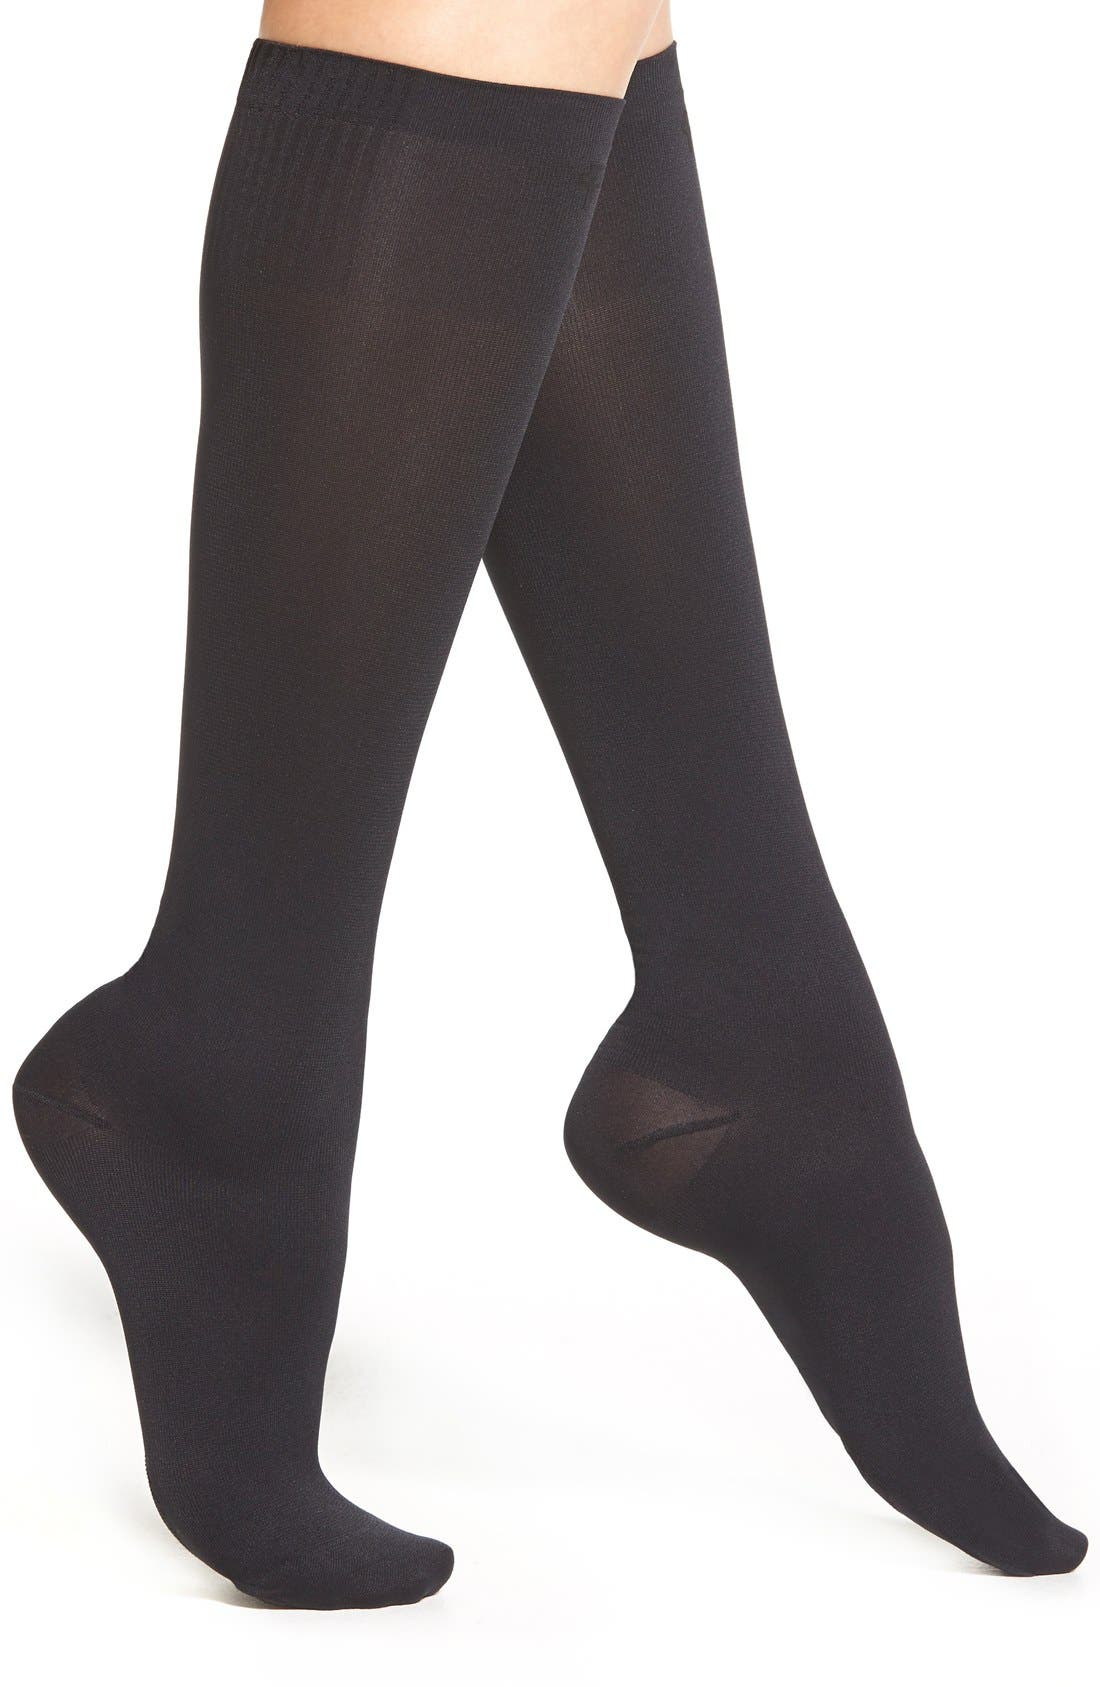 Main Image - Pretty Polly 'On the Go' Compression Trouser Socks